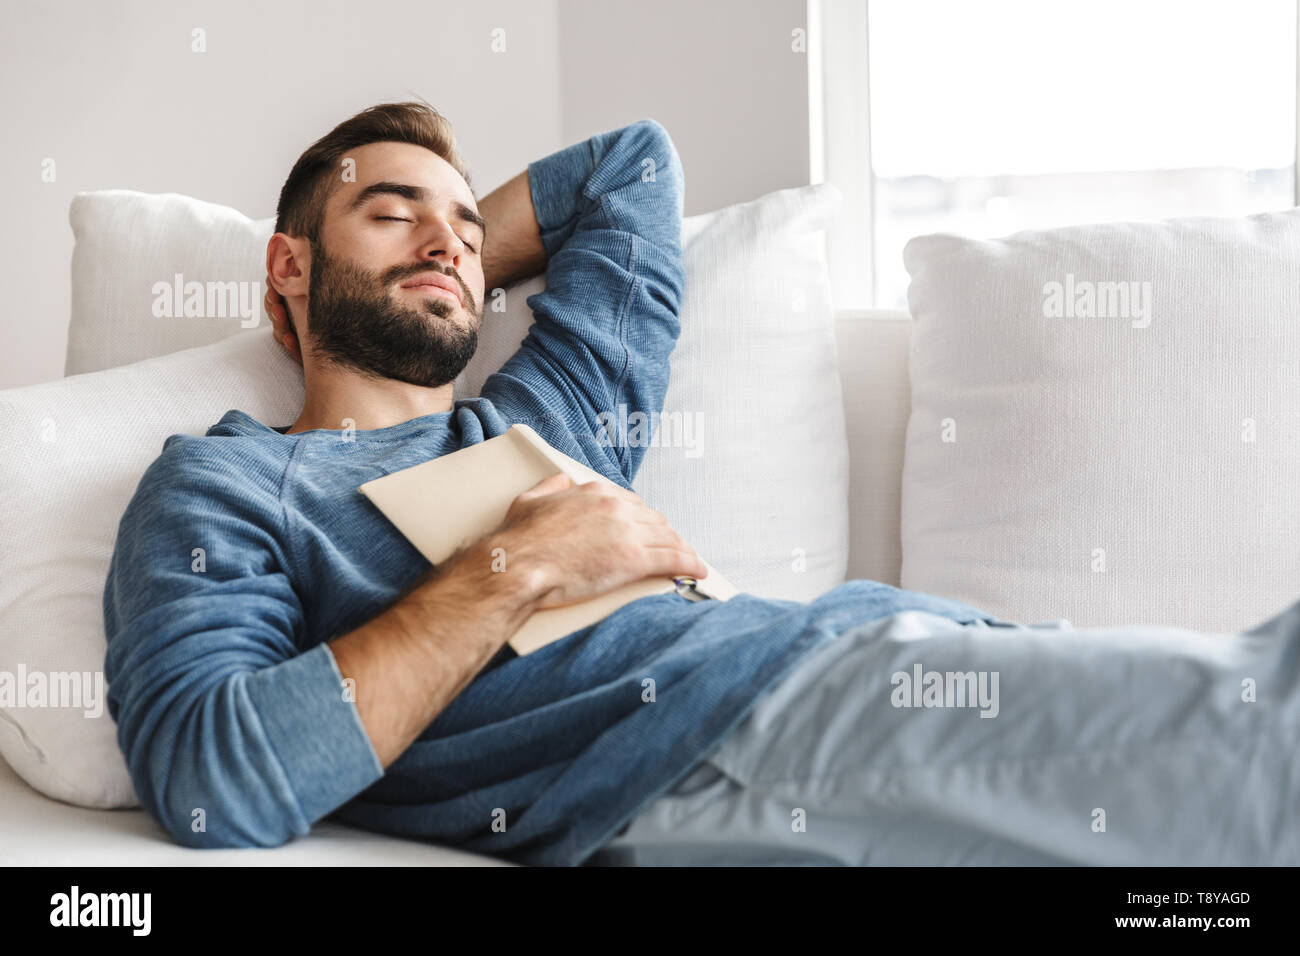 Attractive young man relaxing on a couch at home, sleeping - Stock Image